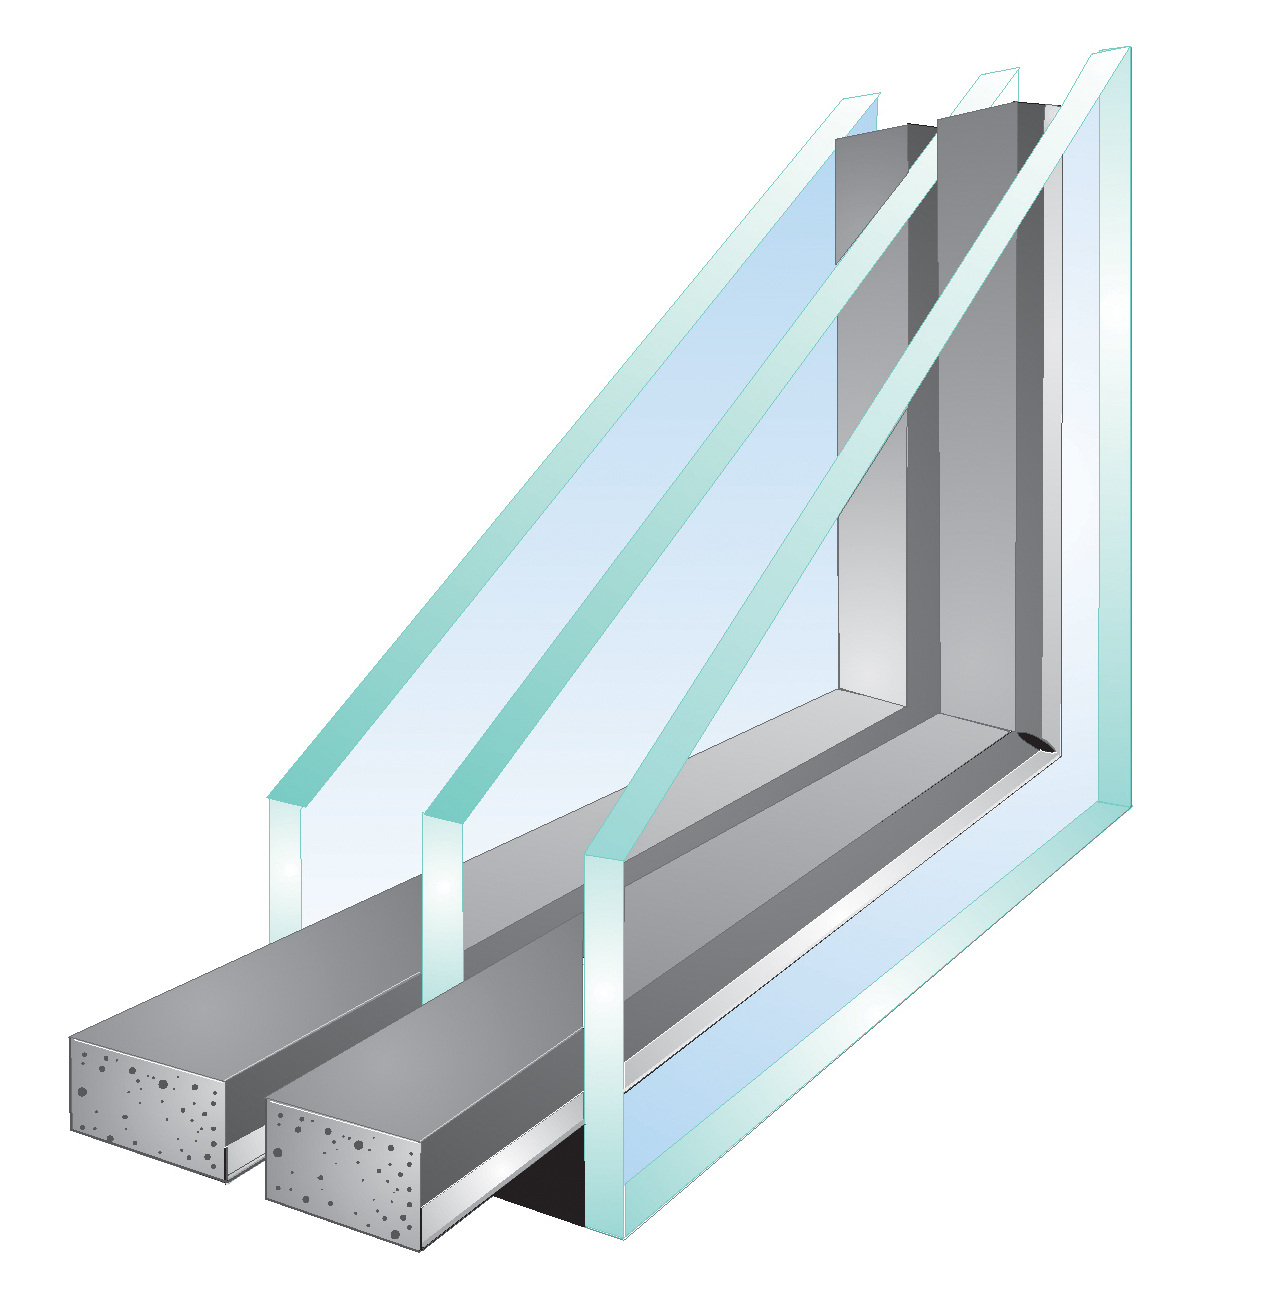 Santafeglass double pane vs triple pane windows for Double glazed window glass